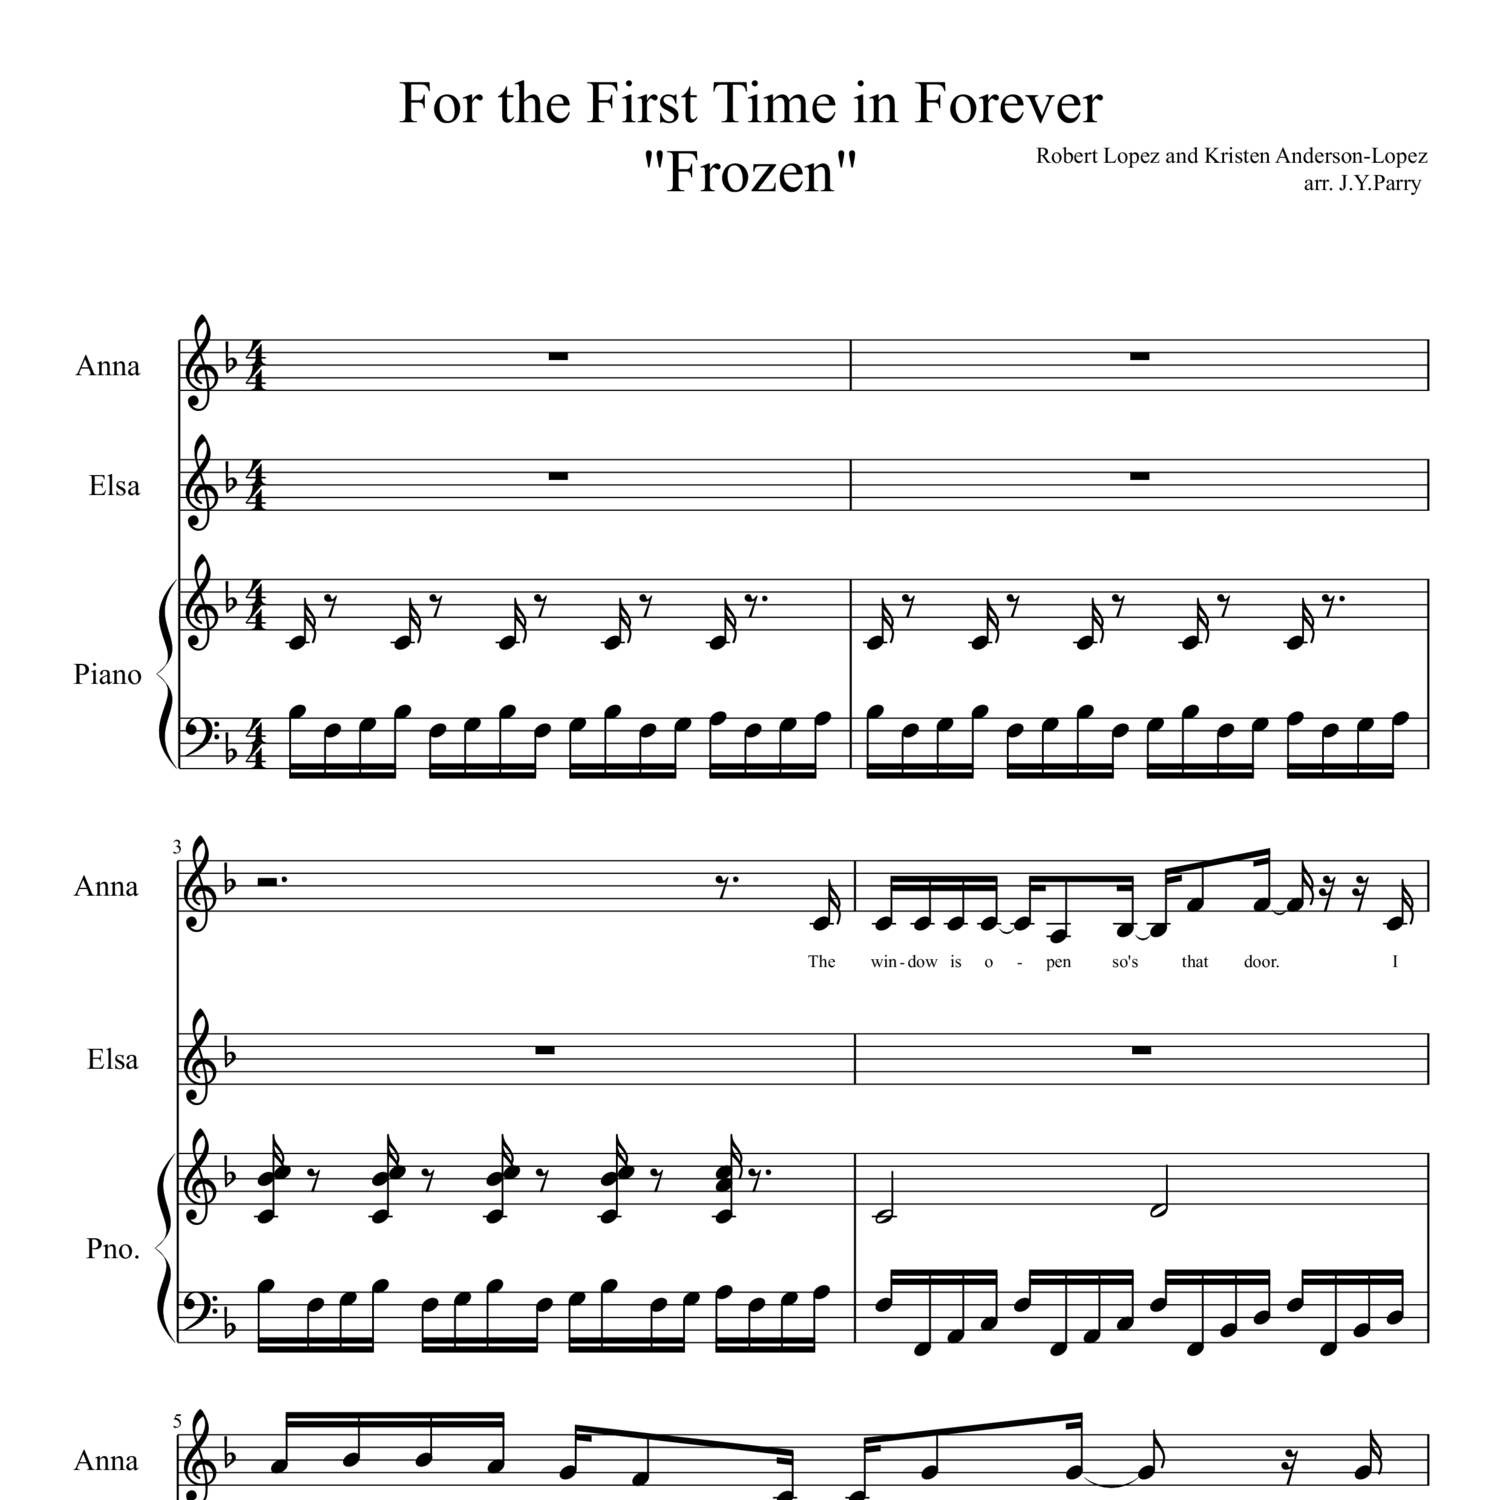 for the first time in forever sheet music free pdf